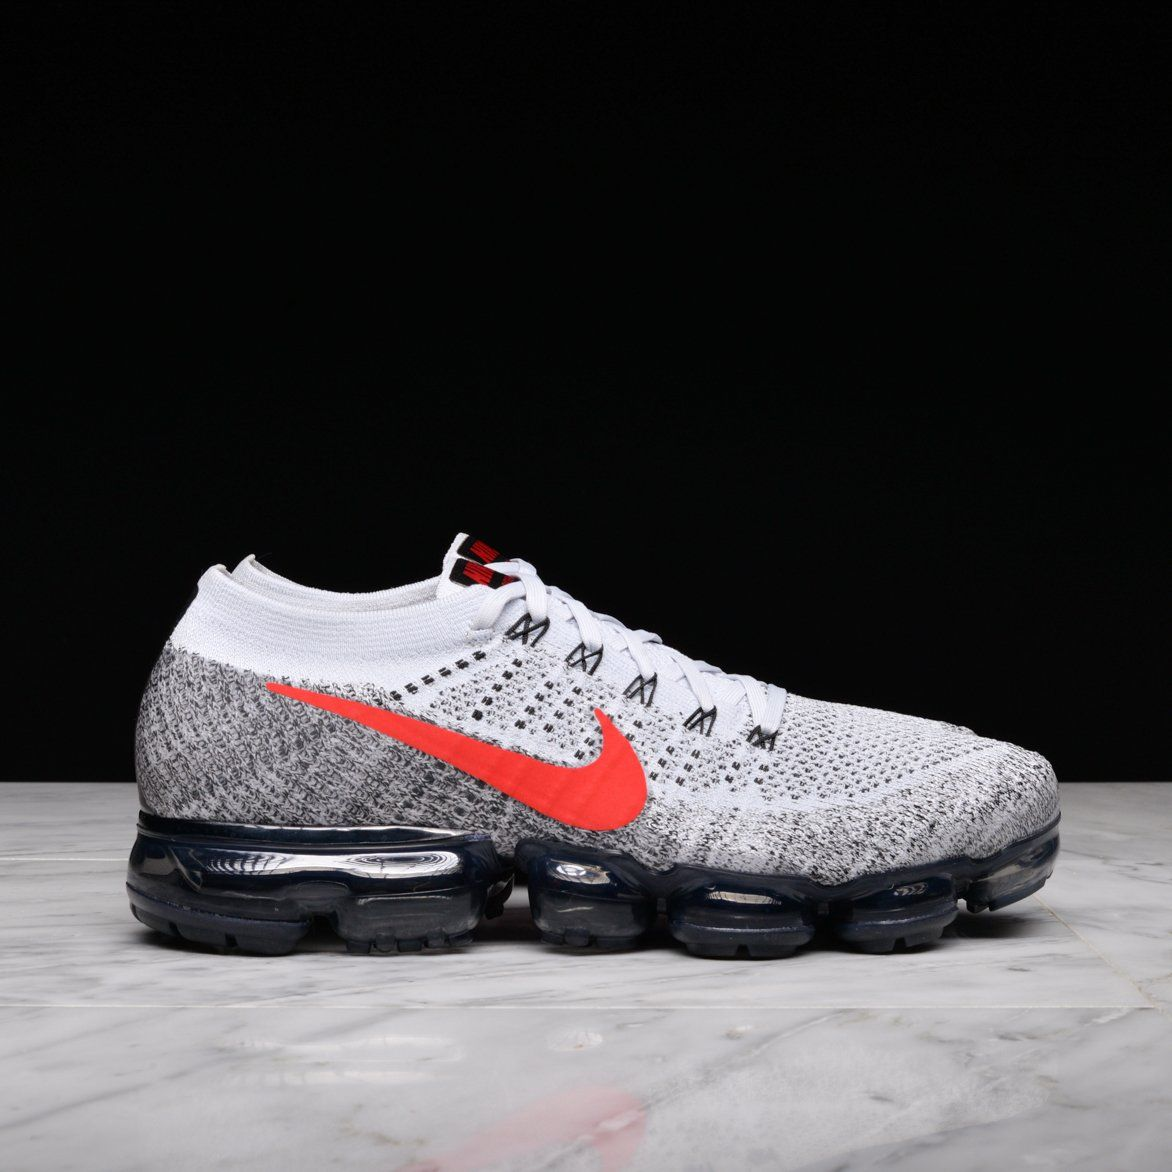 068ea195b1993 20% OFF select Nike Air VaporMax Flyknit colorways via  LapstoneHammeR OG  RED  http   bit.ly 2BZTy86 Triple White  http   bit.ly 2BJ2MVN Oreo 2.0  ...